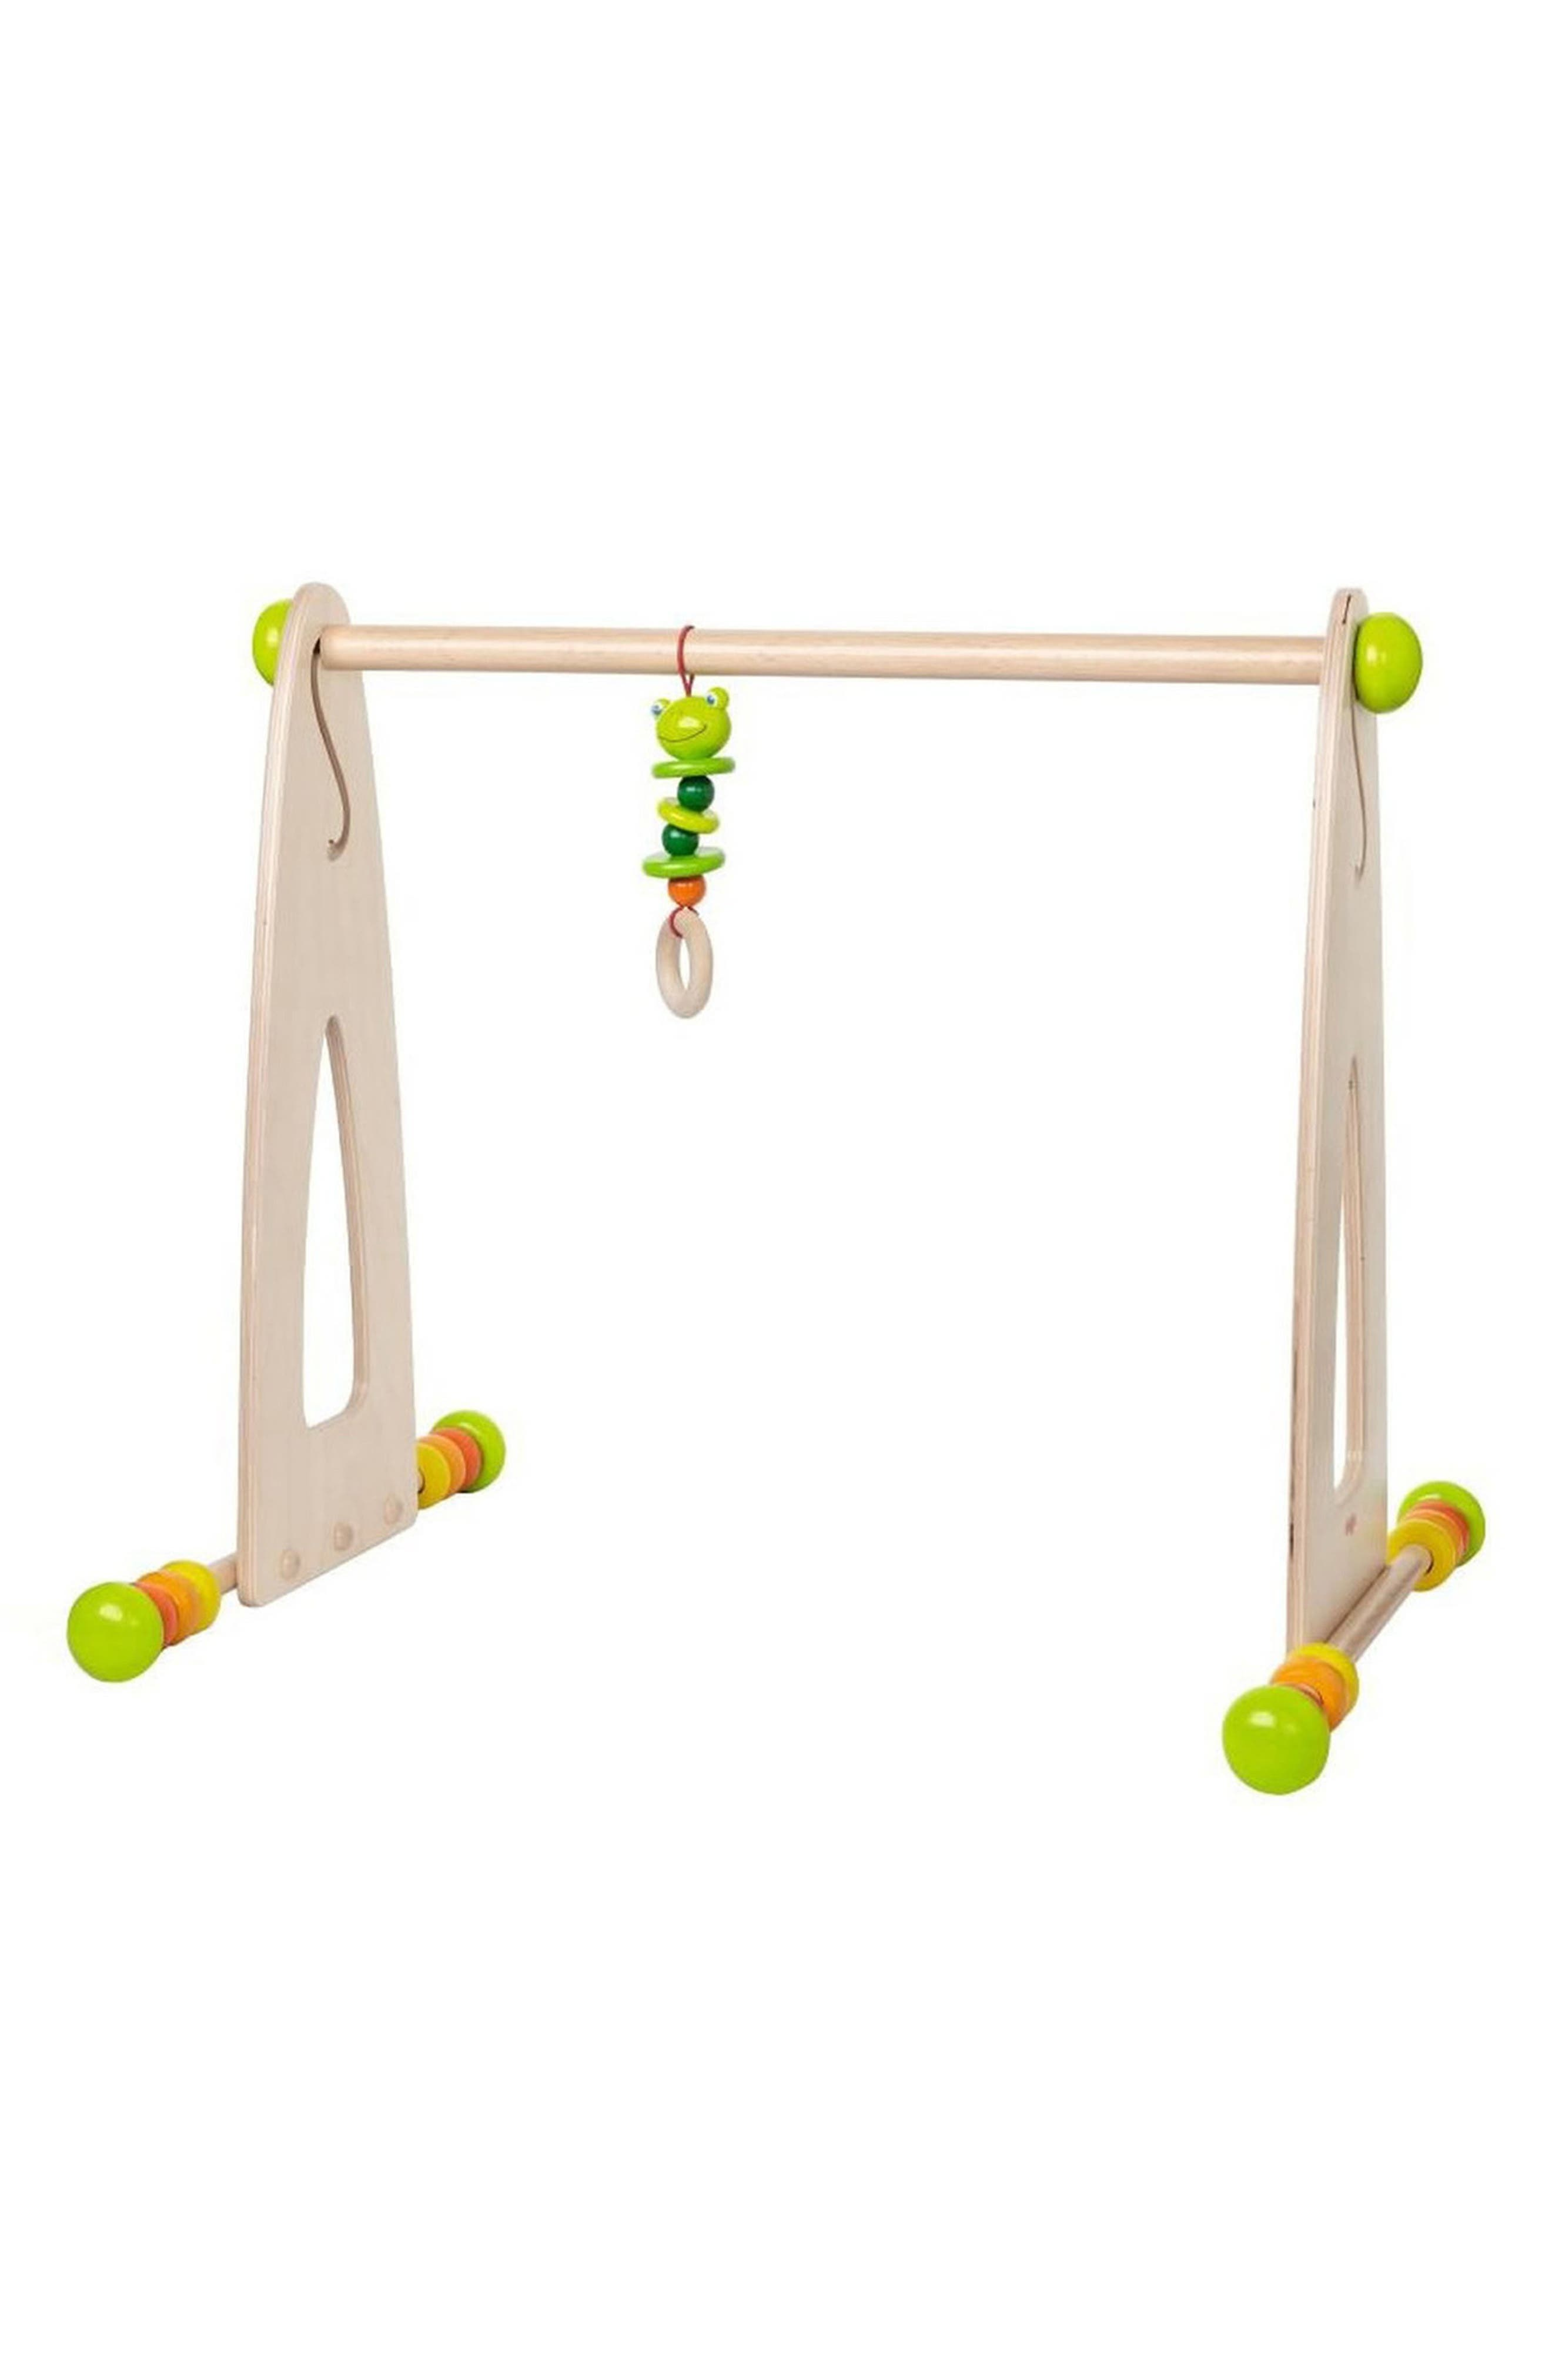 Little explorers will love the sound of cheerfully colored wooden disks that happily bang together on this clickety-clacking play gym. Above, a little frog hanging on the discovery bar is in reach of baby\\\'s hands. Style Name: Haba Colorful Fun Play Gym. Style Number: 6056027. Available in stores.